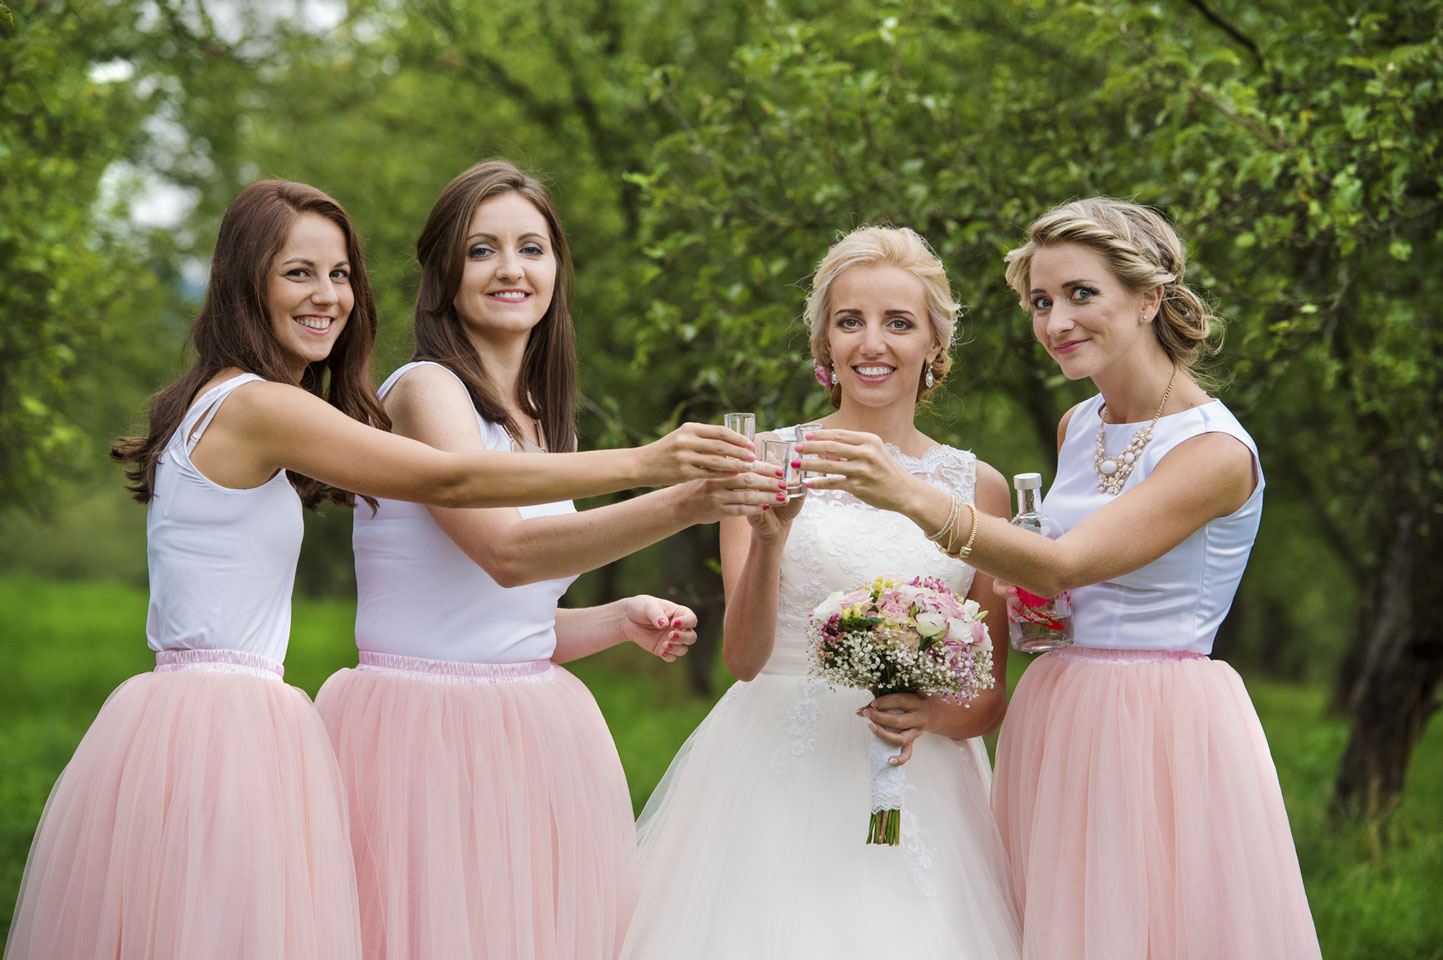 Bride-with-bridesmaids-000083081117_Medium.jpg